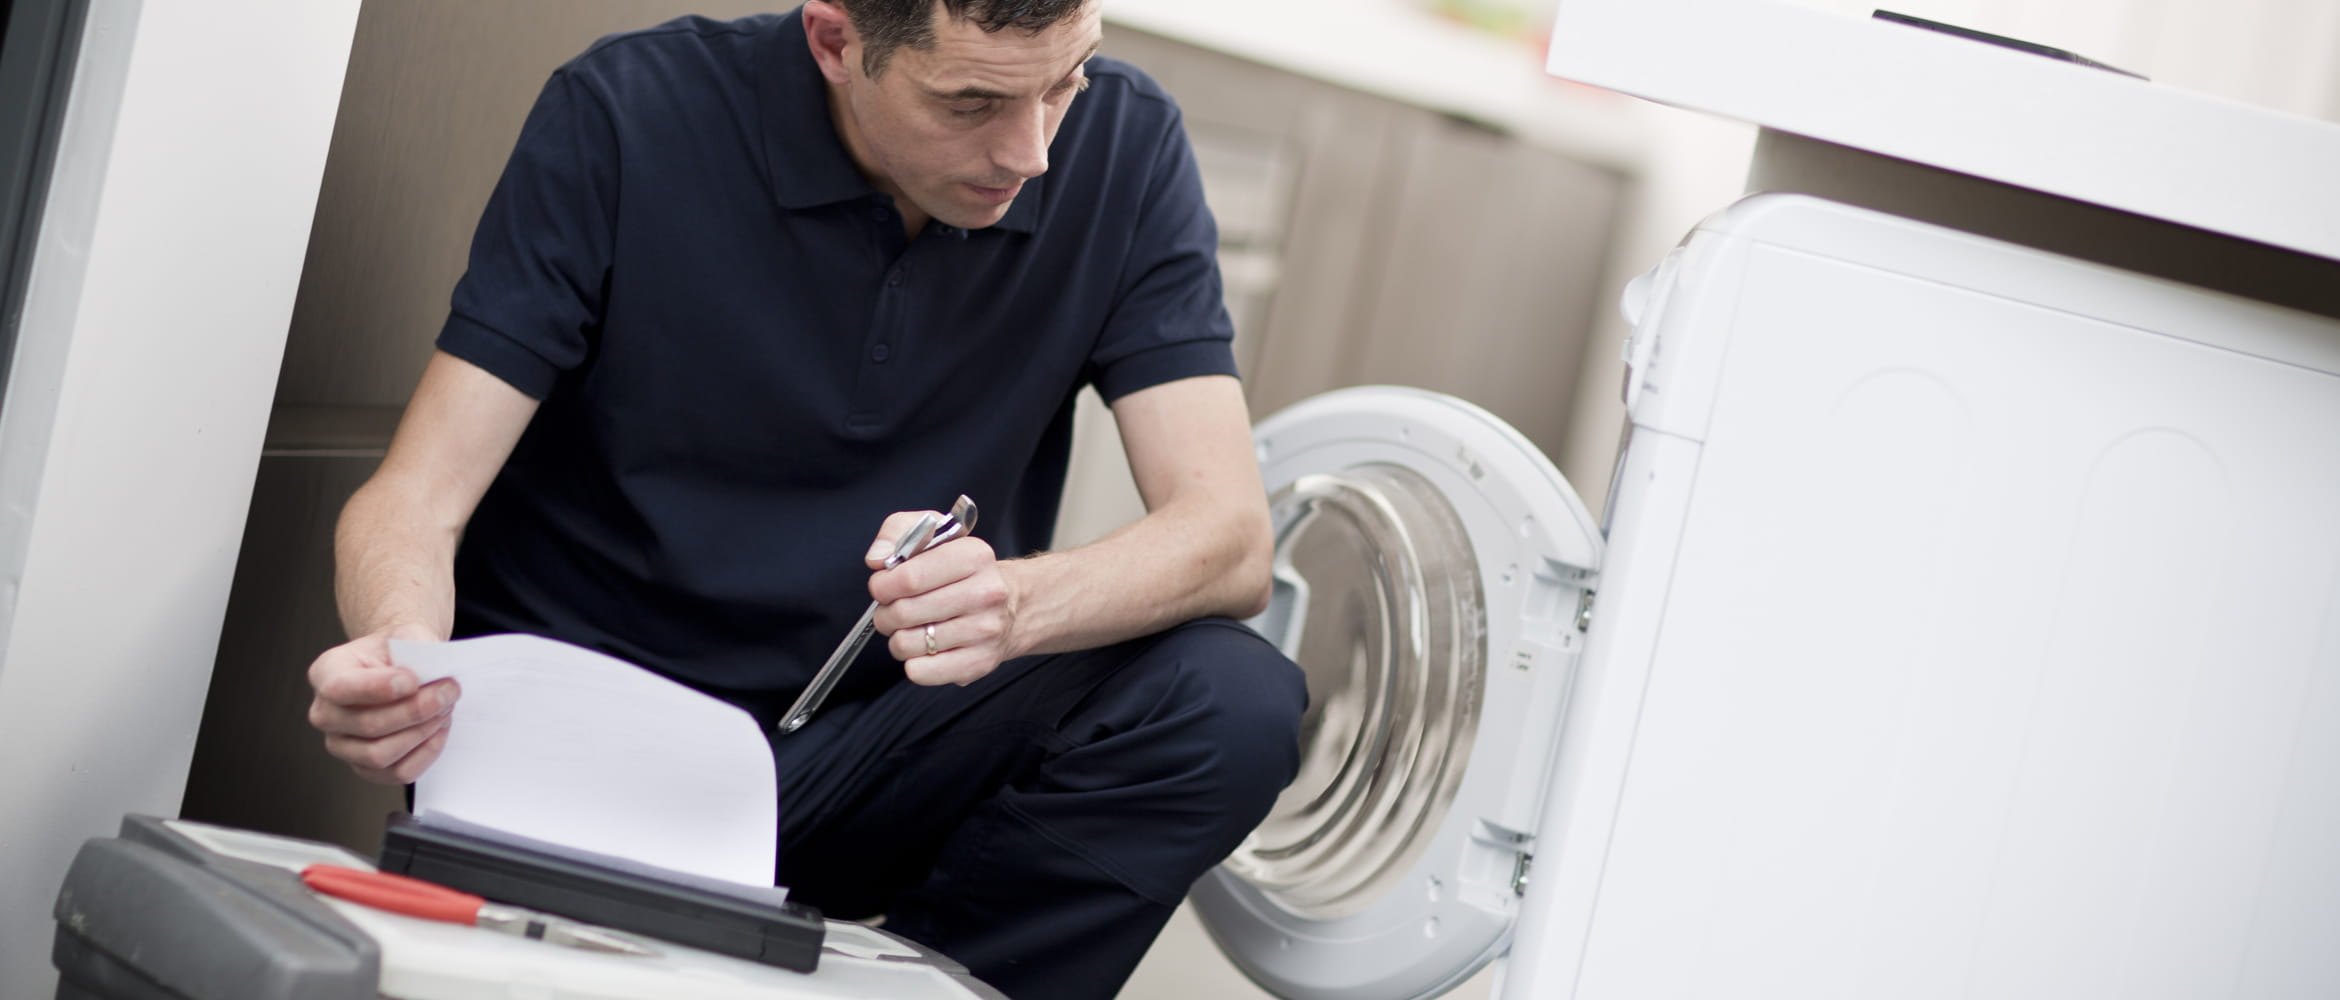 Man printing A4 document on PJ after fixing washing machine